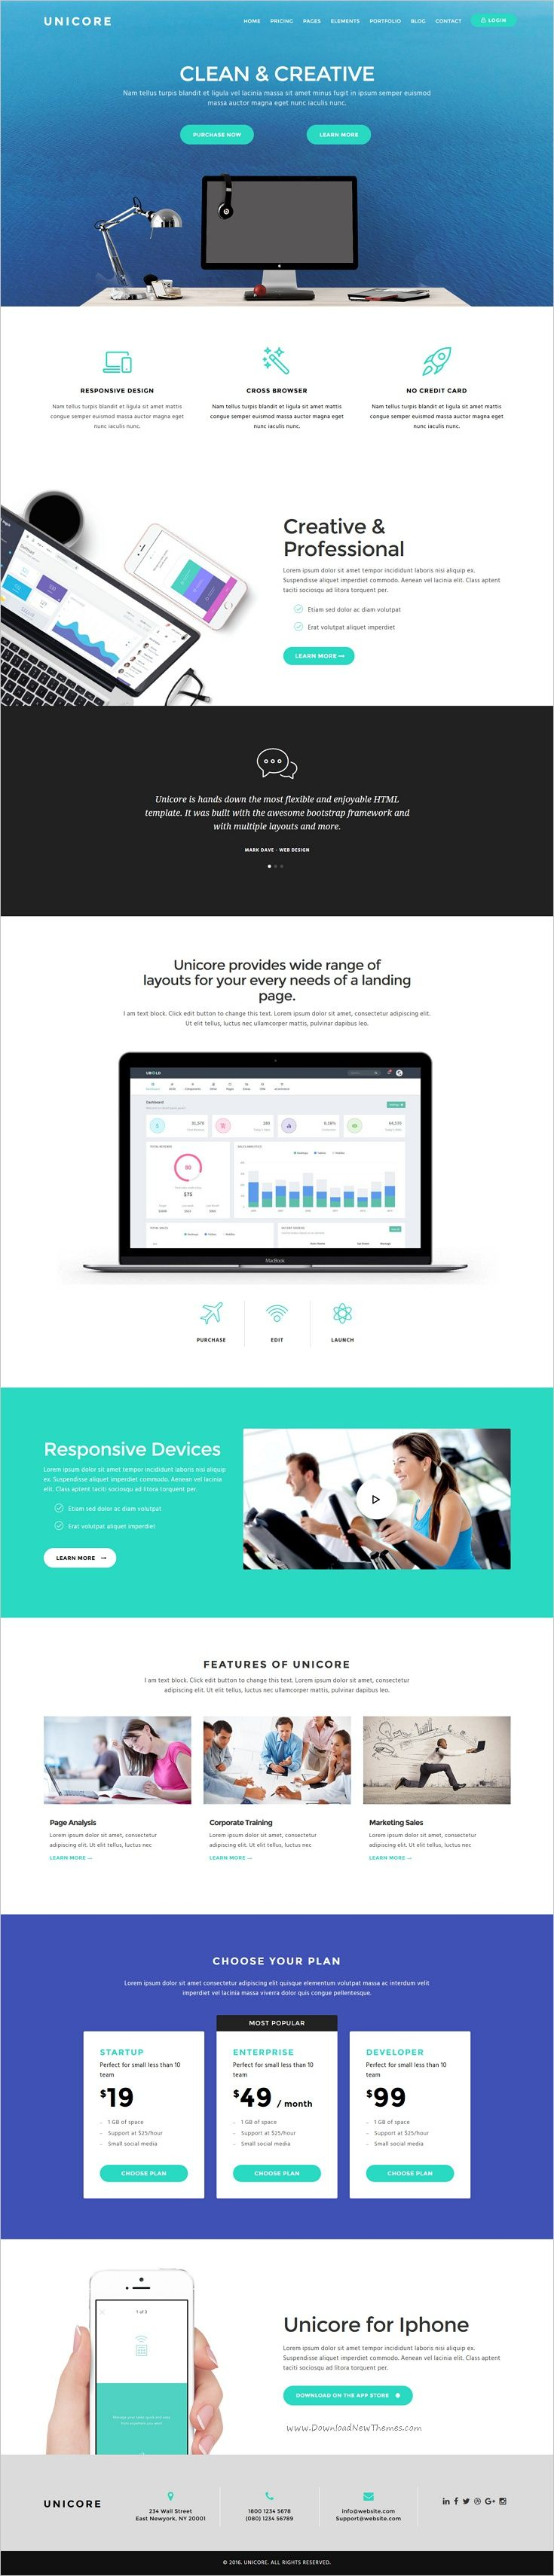 Unicore is a clean, modern, full-featured #WordPress theme for perfect #onepage Landing Page #website with 20 unique homepage layouts download now➩ https://themeforest.net/item/unicore-wordpress-bootstrap-landing-page-theme/17162399?ref=Datasata